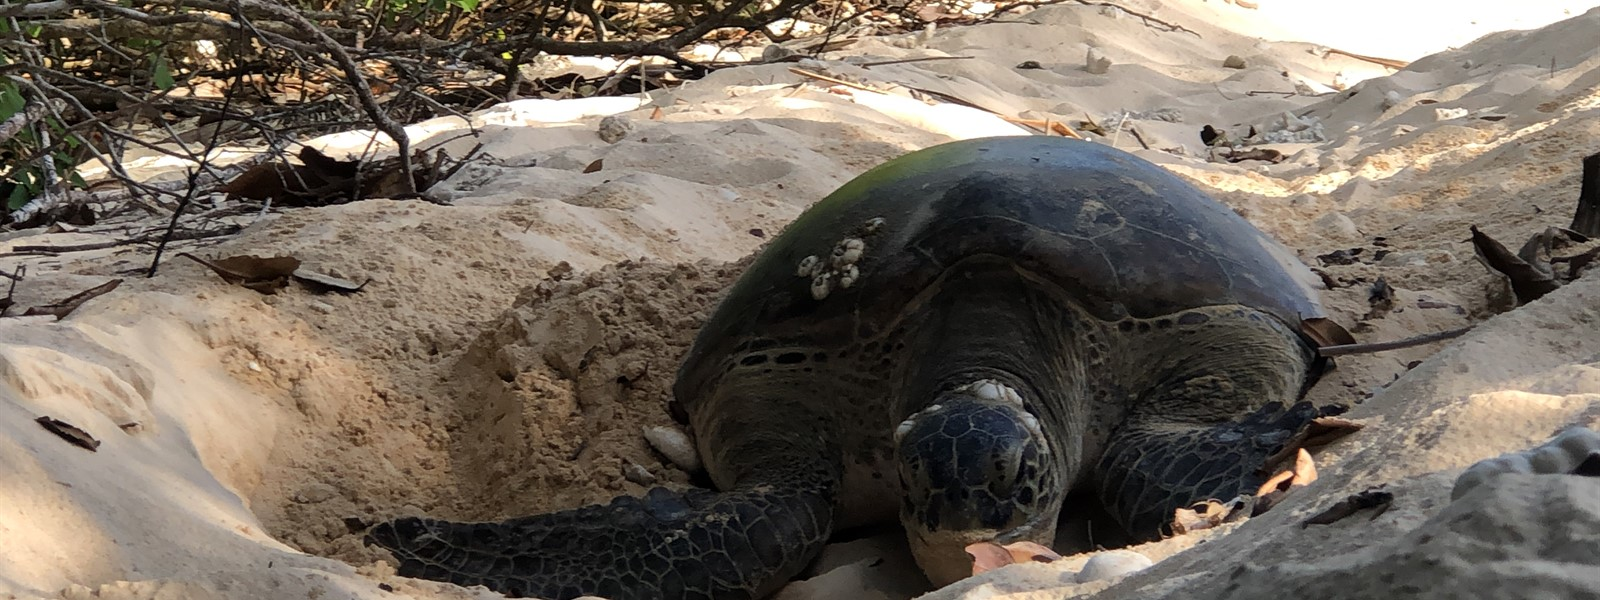 Picture of a turtle on a beach.